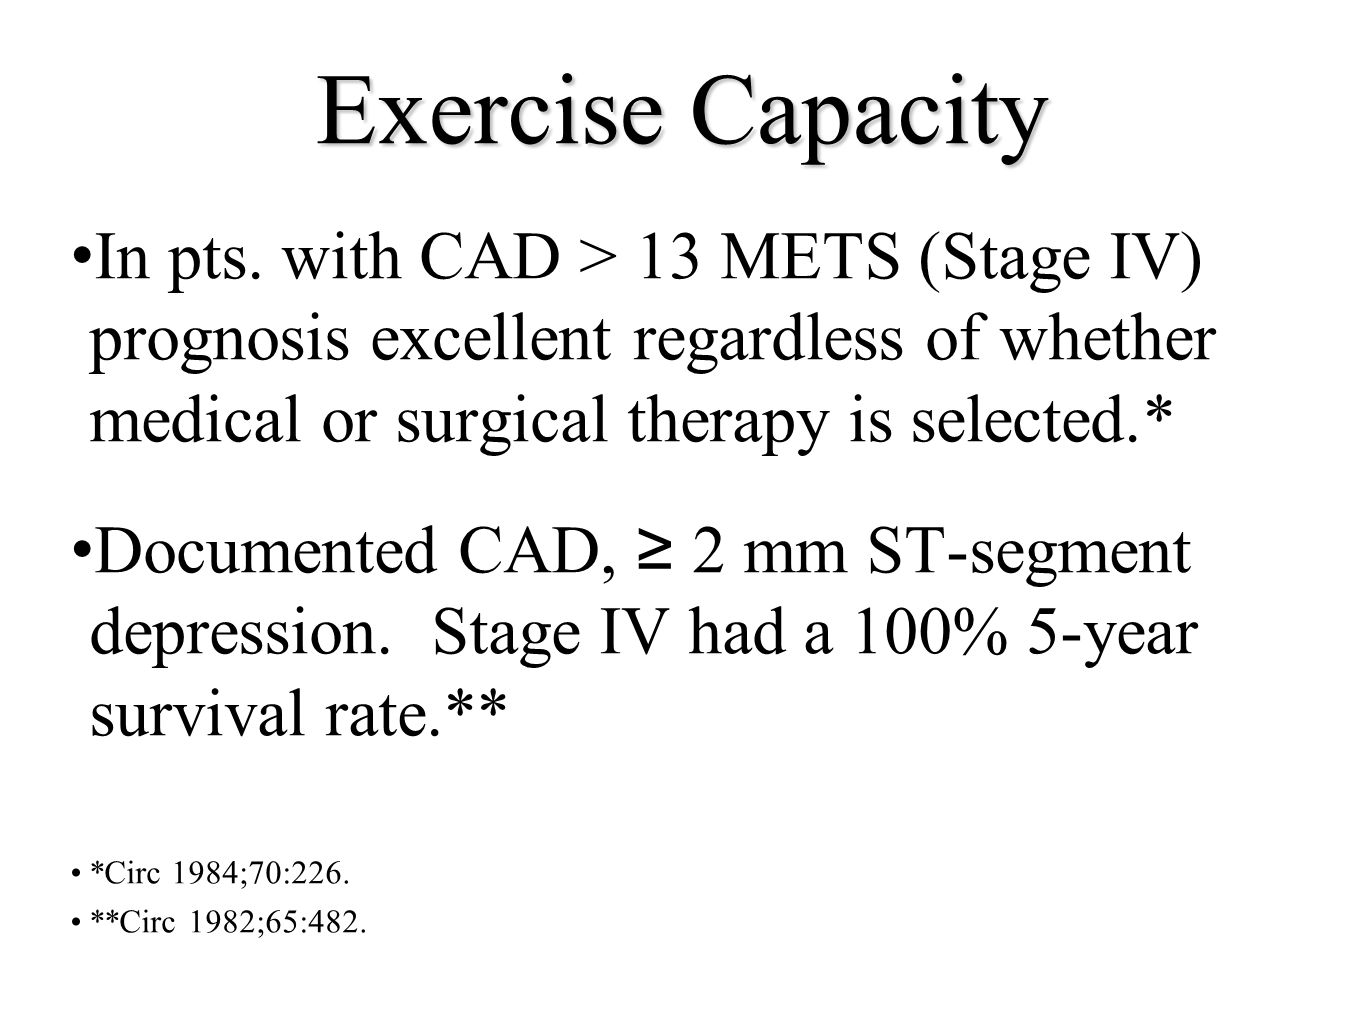 Exercise Capacity In pts. with CAD > 13 METS (Stage IV) prognosis excellent regardless of whether medical or surgical therapy is selected.* Documented